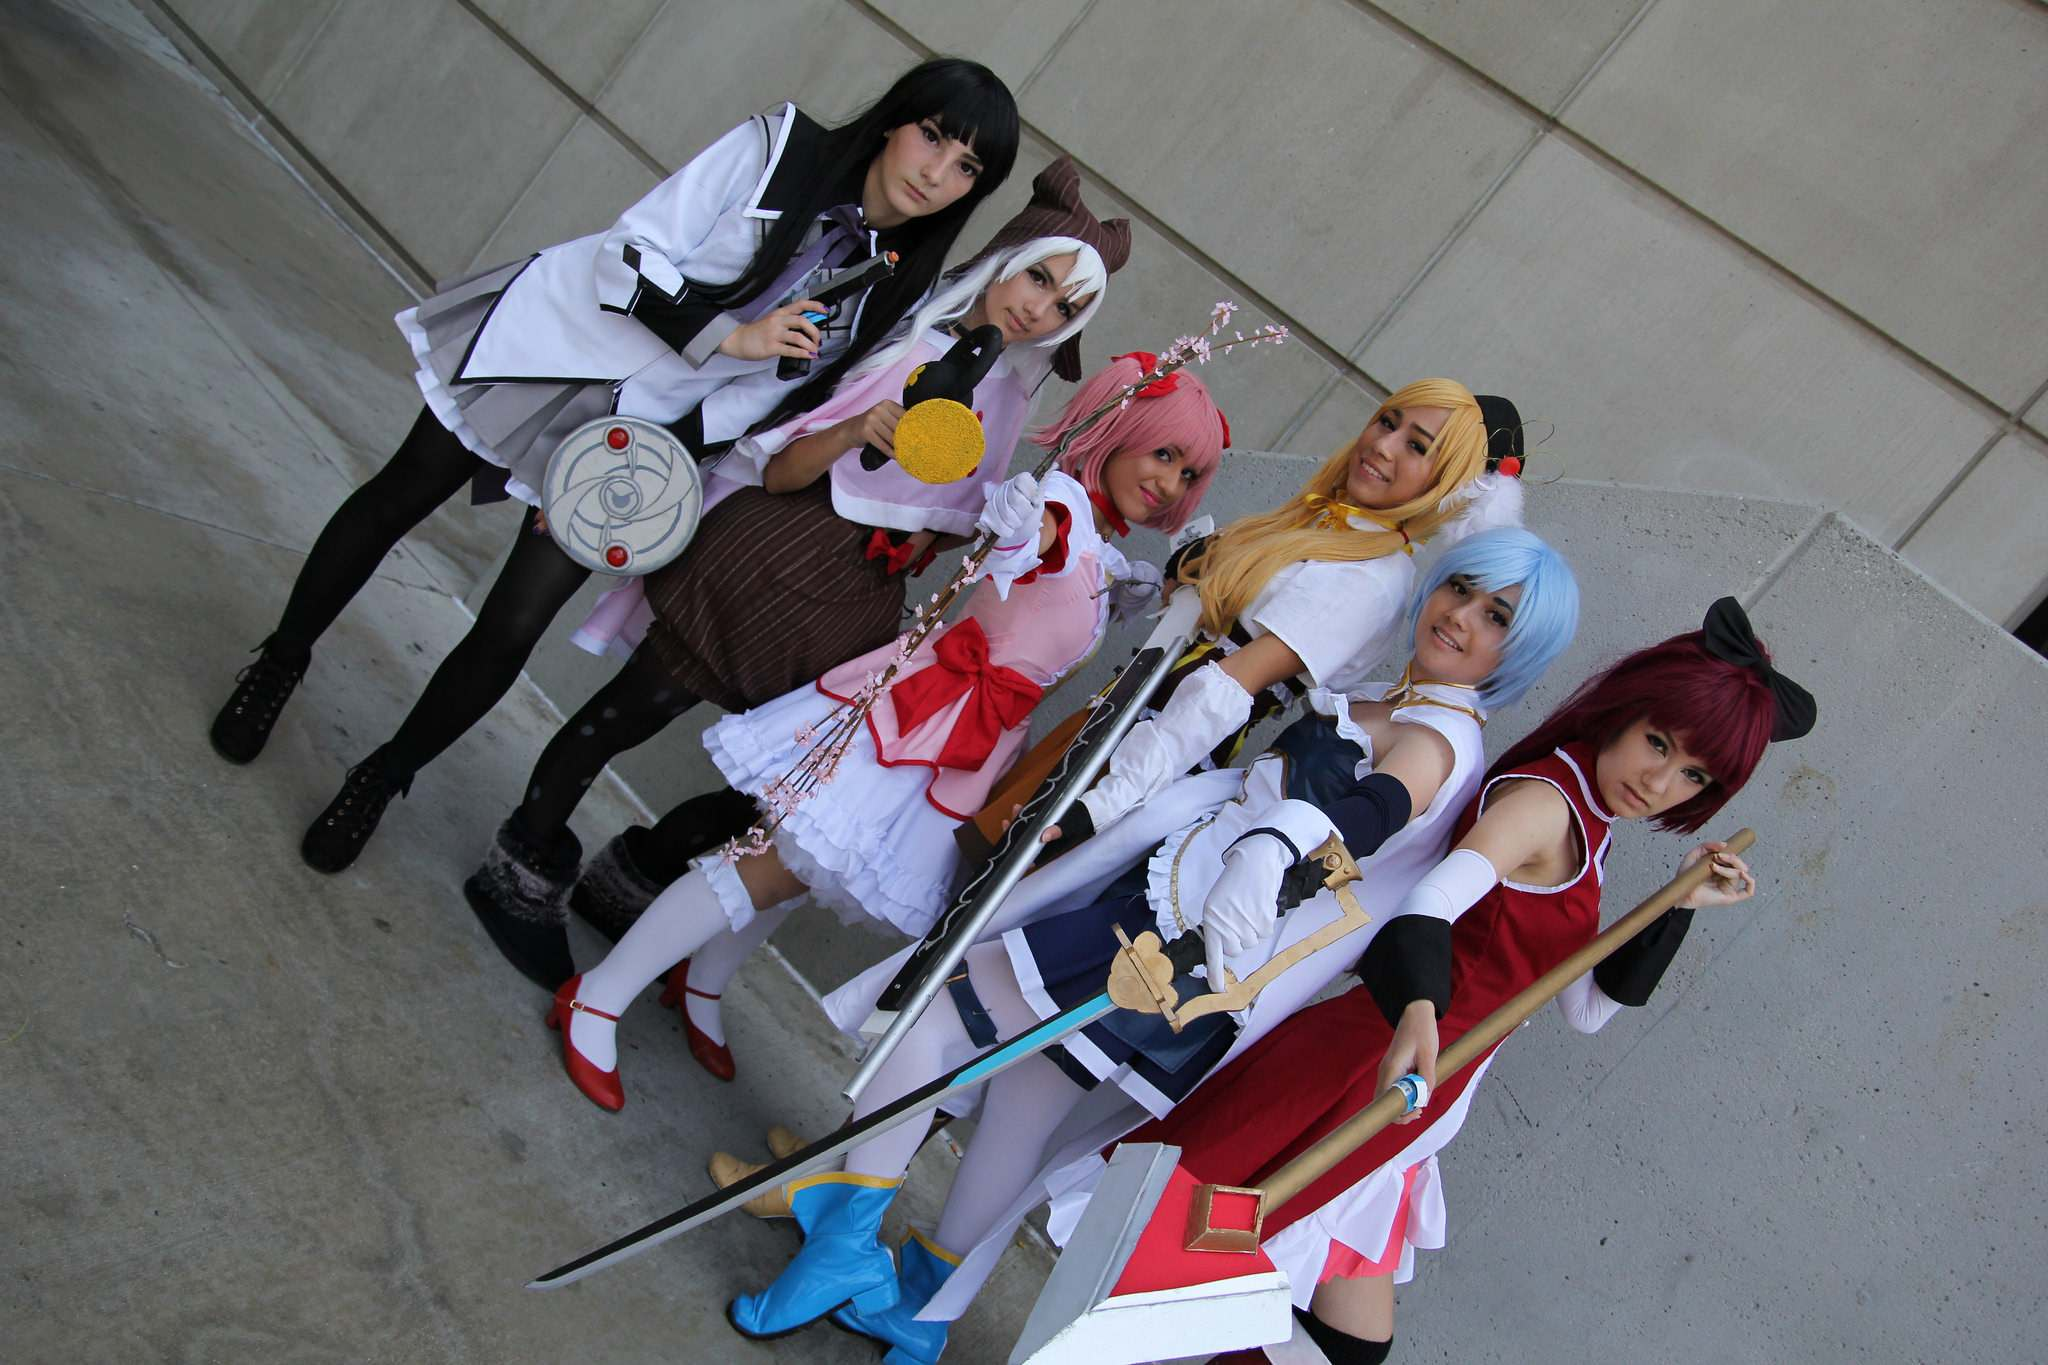 ax20164 Anime Expo 2016 in Los Angeles Convention Center